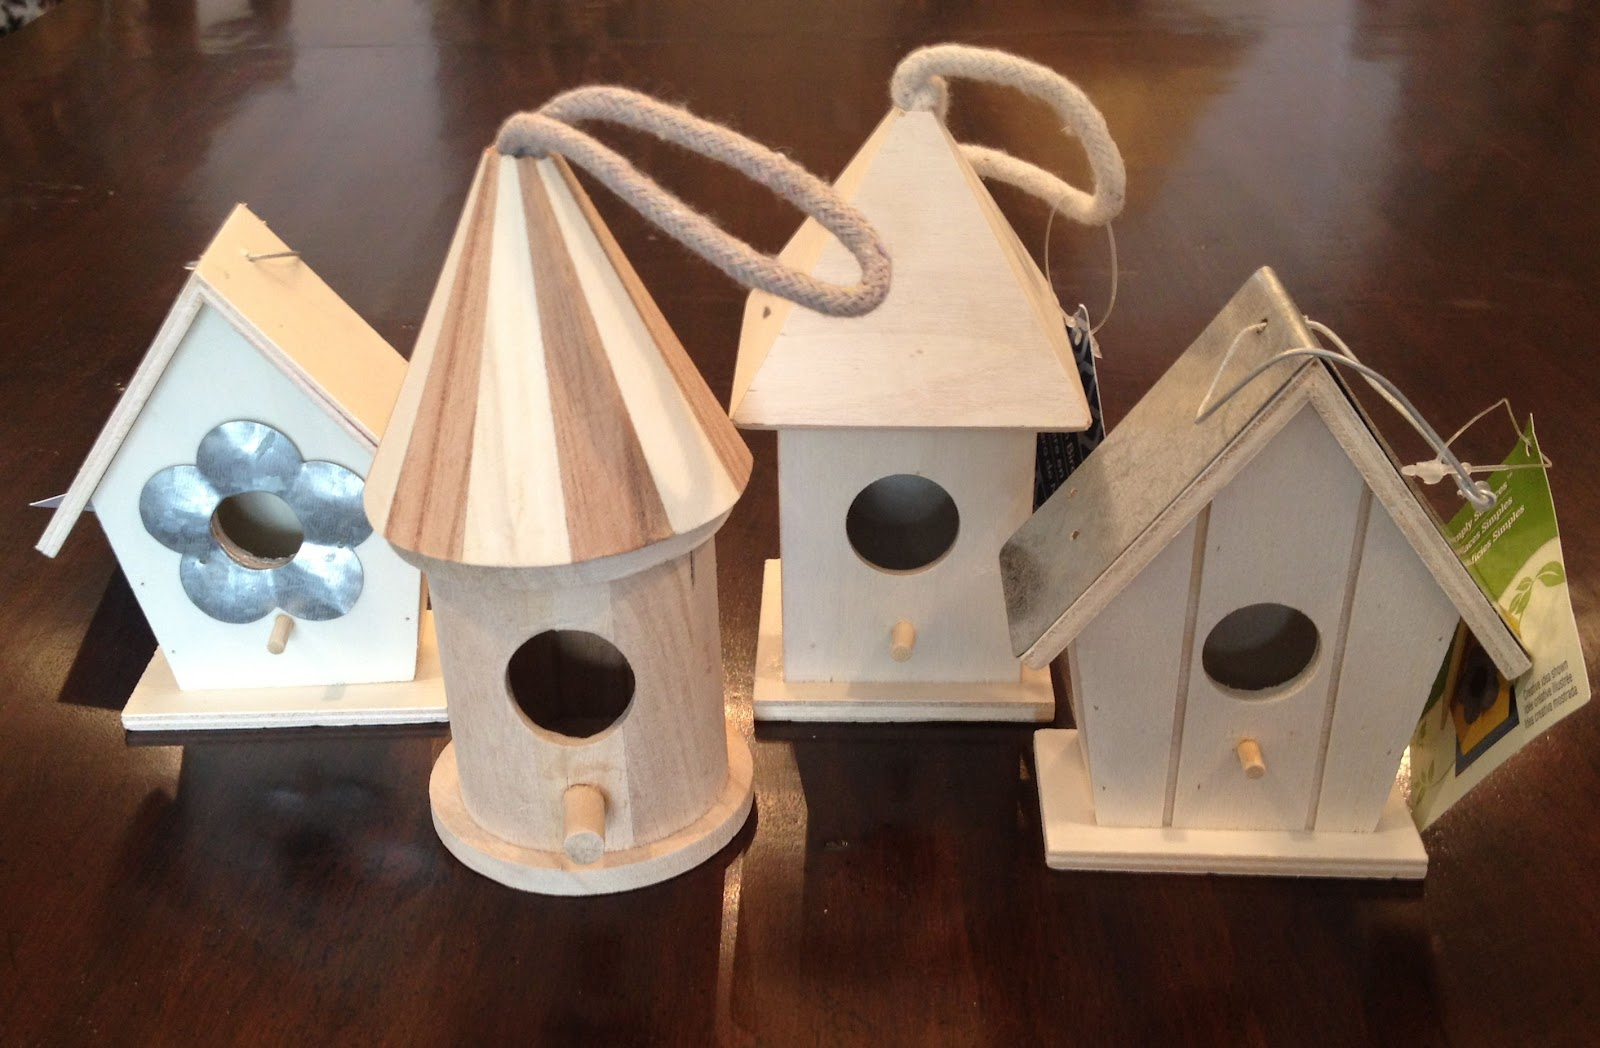 Earth Day Craft: DIY Shoe-Box Birdhouse - JAM Blog